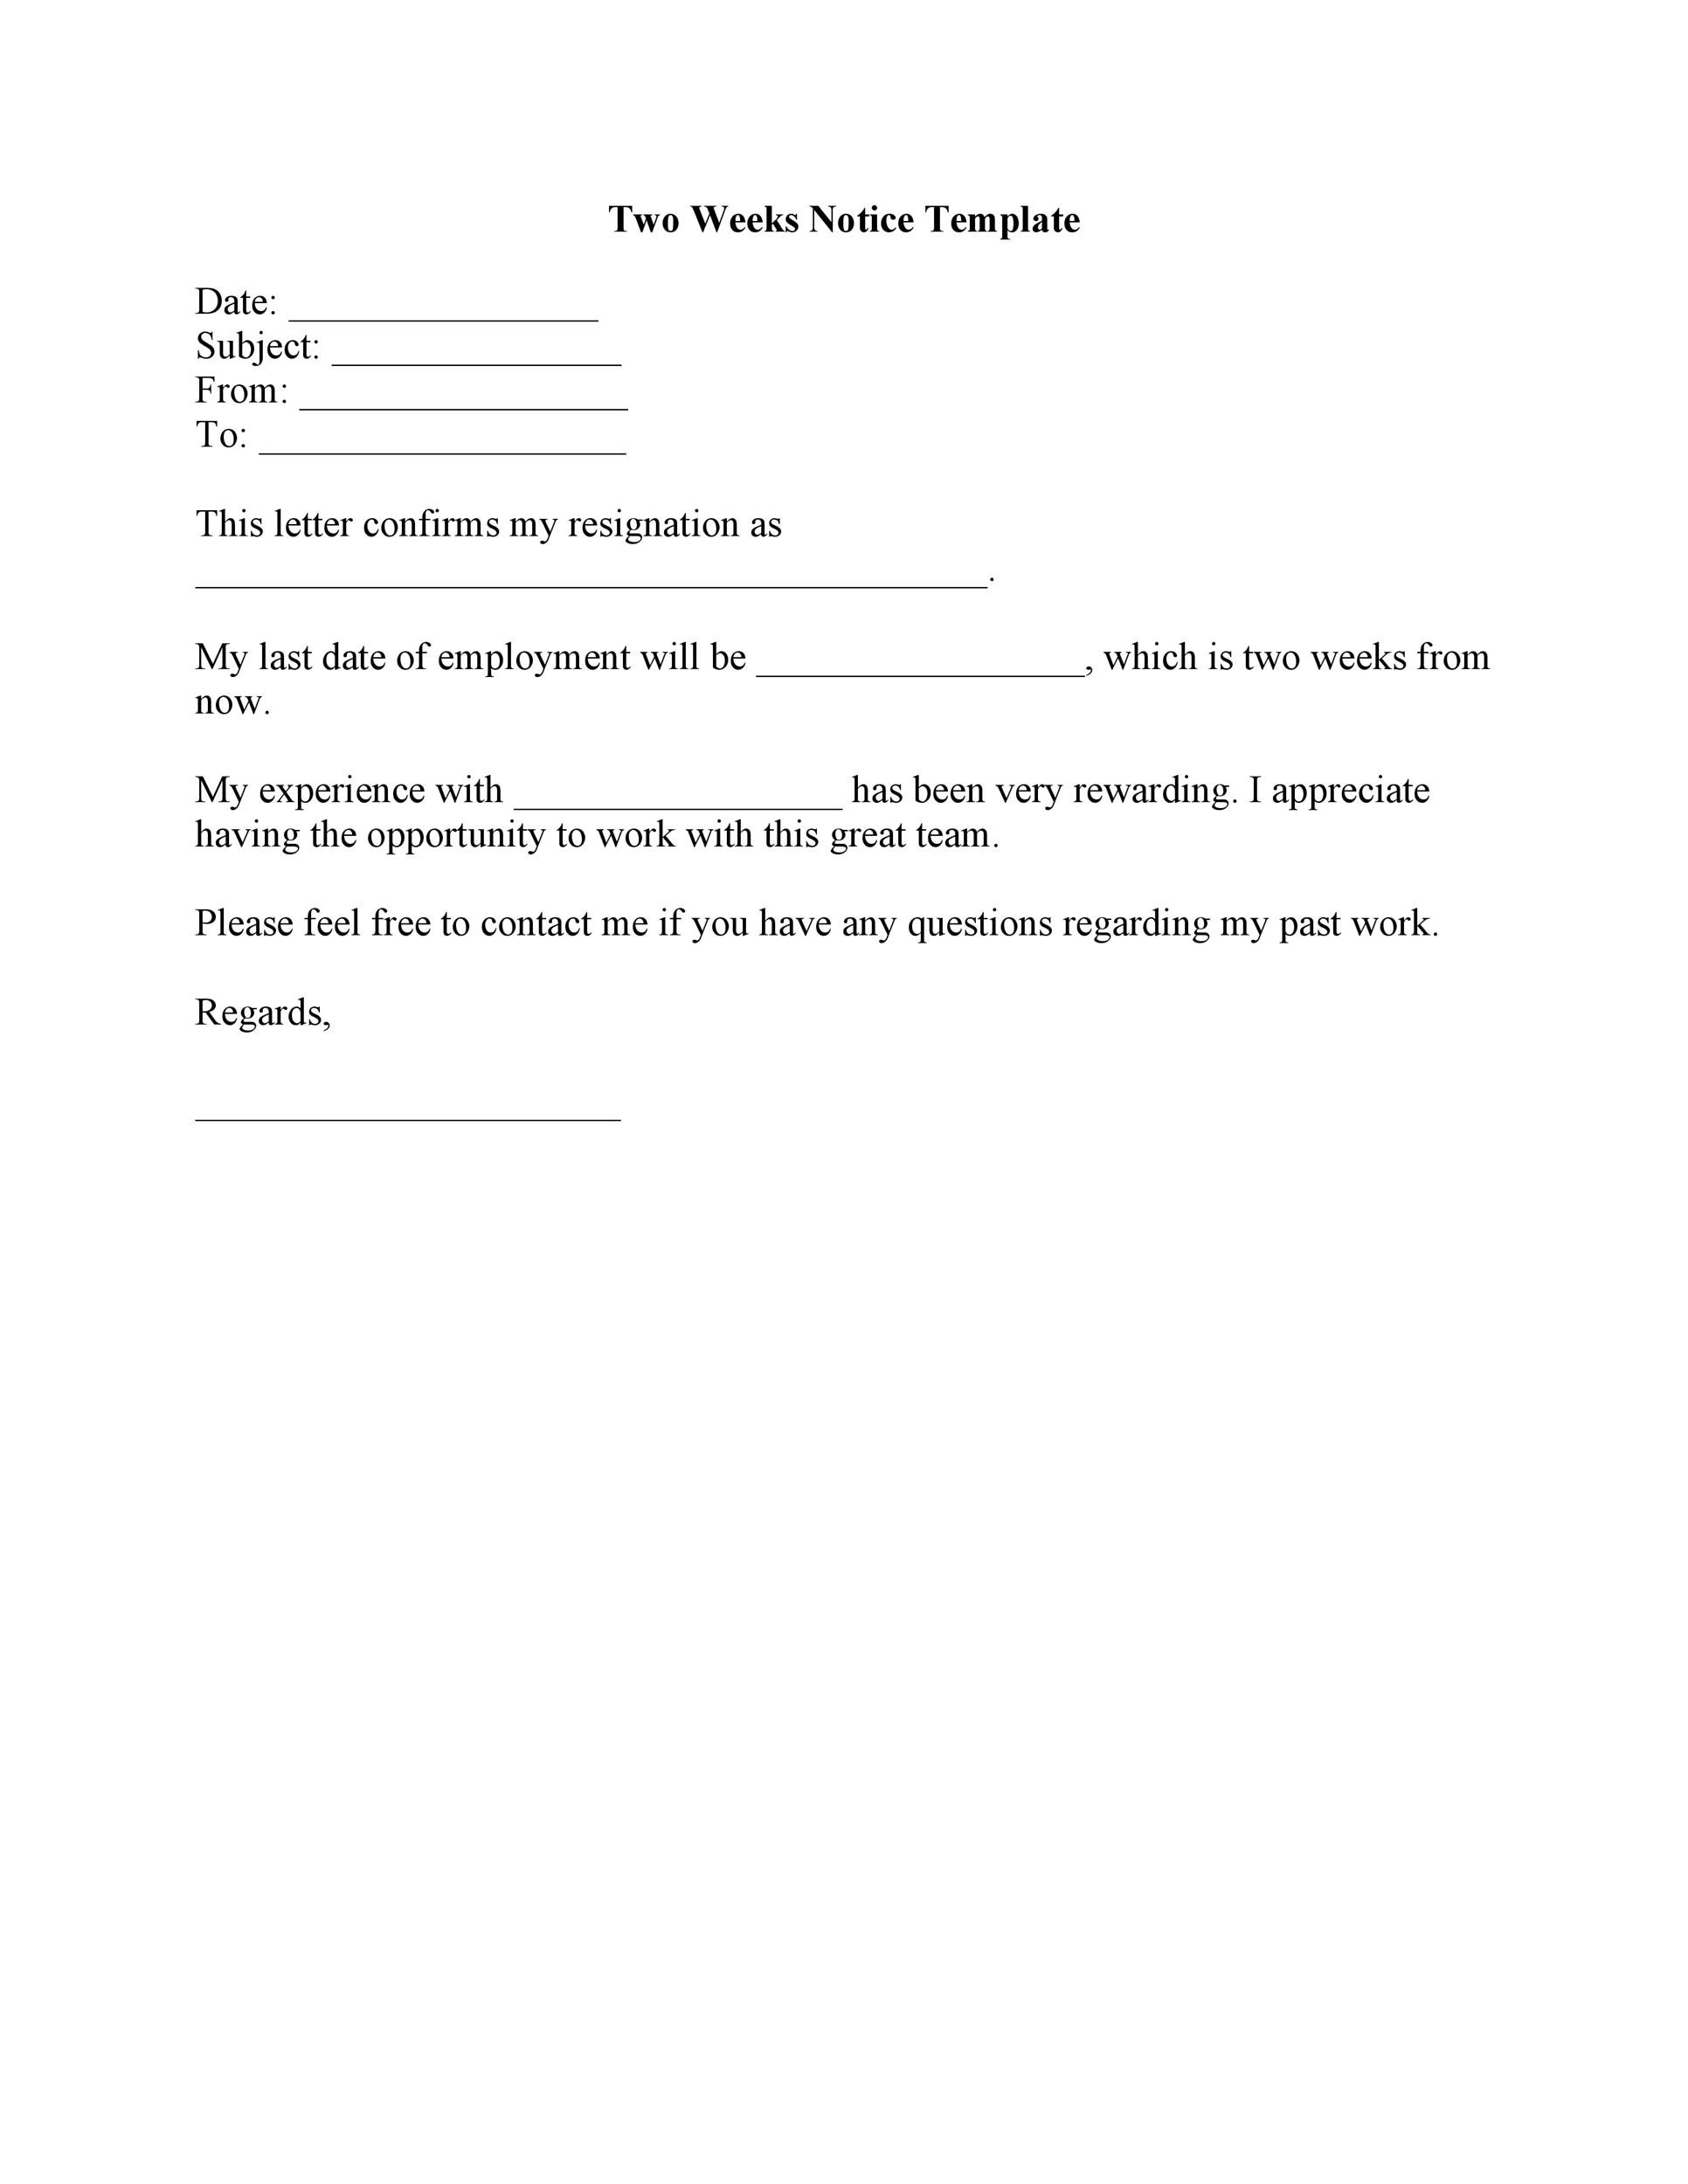 40 Two Weeks Notice Letters  Resignation Letter Templates - 2 Weeks Notice Template